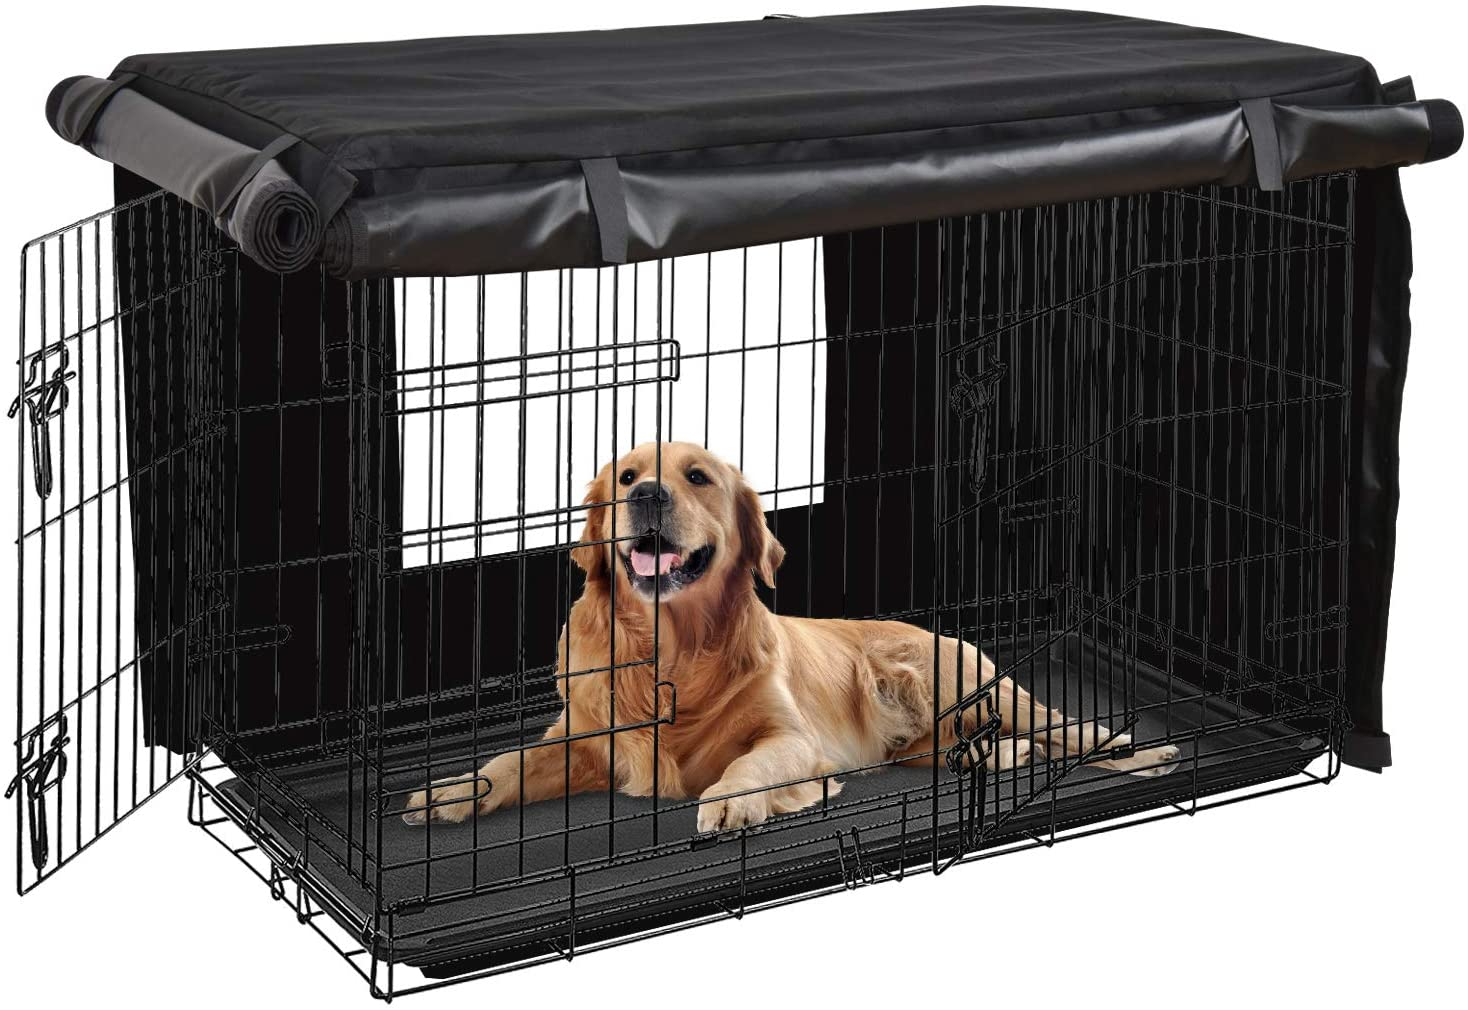 HONEST OUTFITTERS Dog Crate Cover,30 Inch Dog Kennel Cover for Medium and Large Dog, Heavy Duty Oxford Fabric,with Double Door, Pockets and Mesh Window (31L x 20W x 21H, Black)